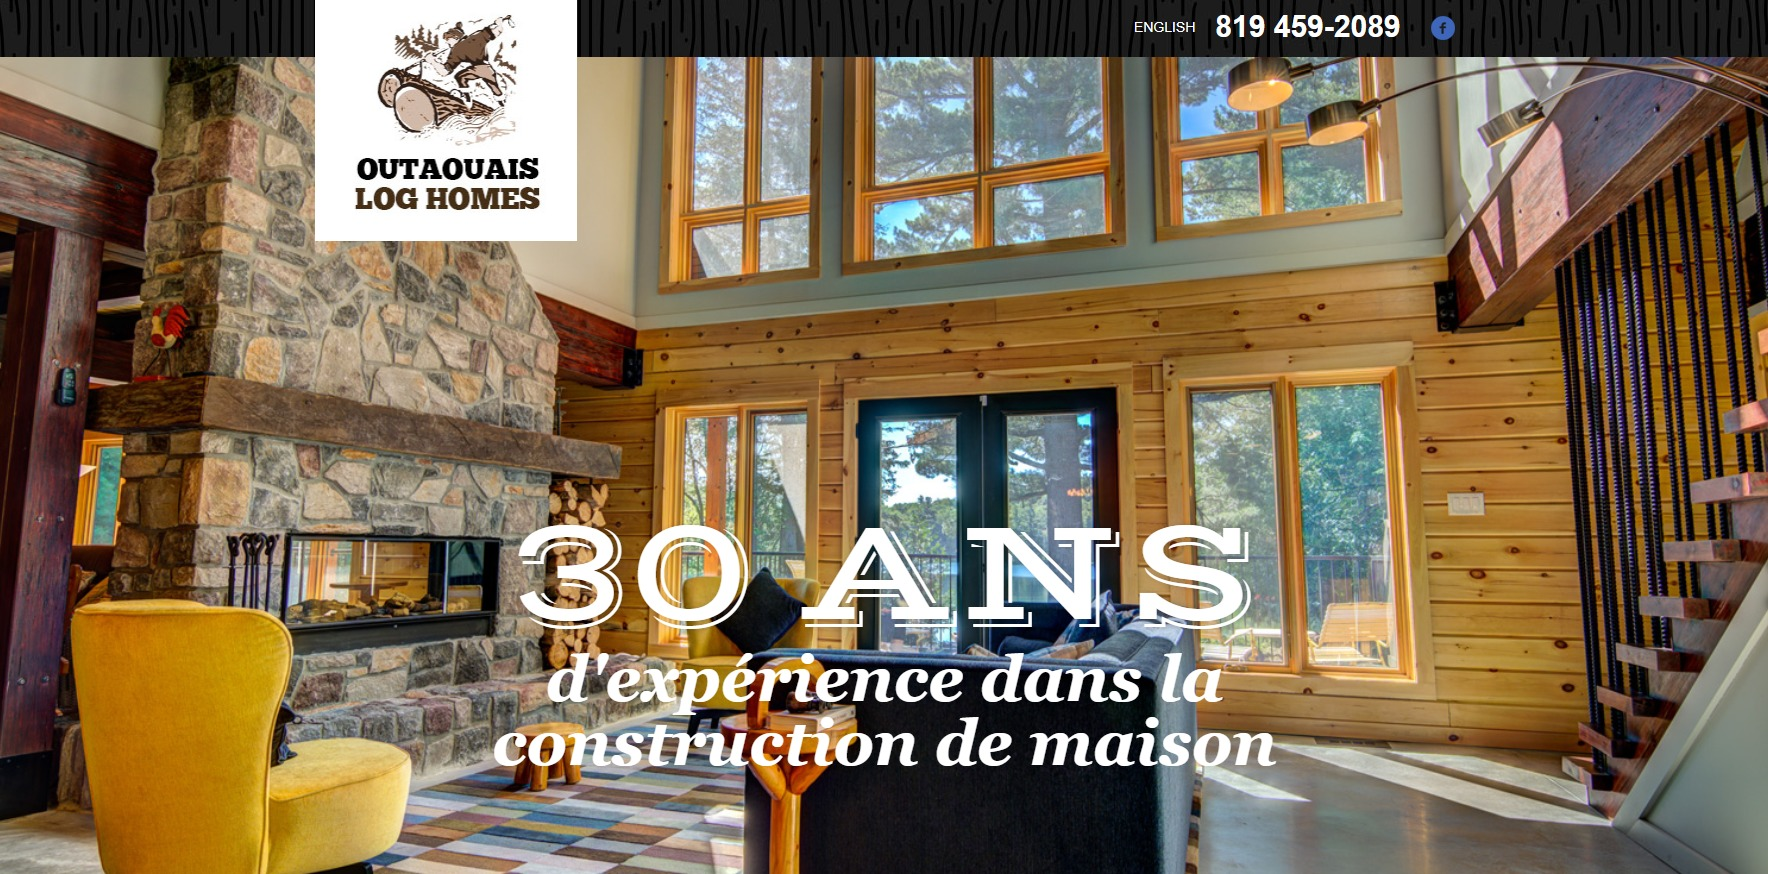 Outaouais log home